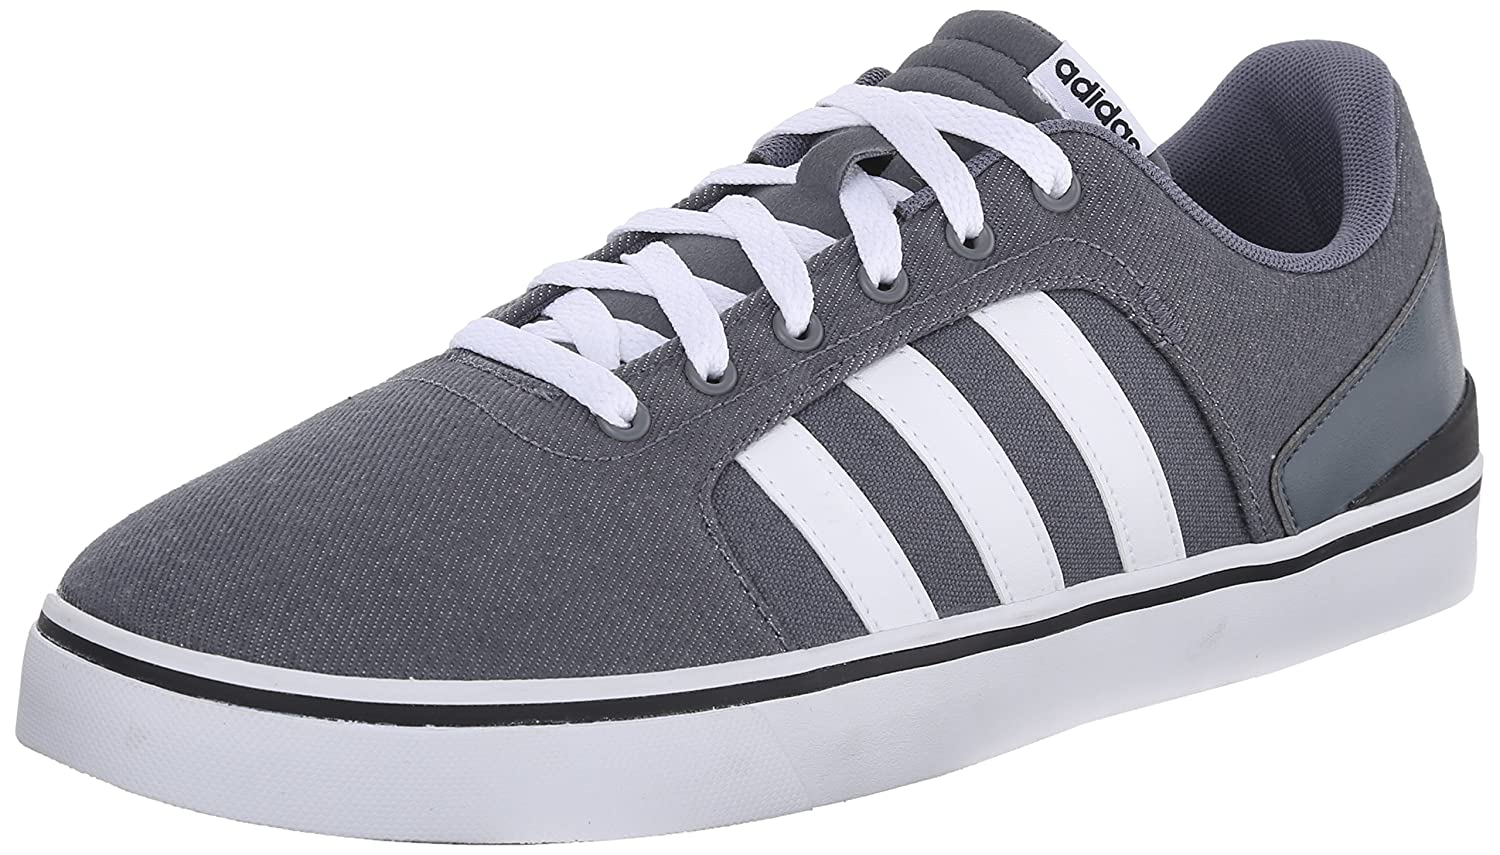 meet c0fc2 ac43c Amazon.com   adidas NEO Men s Hawthorn ST Shoe   Walking